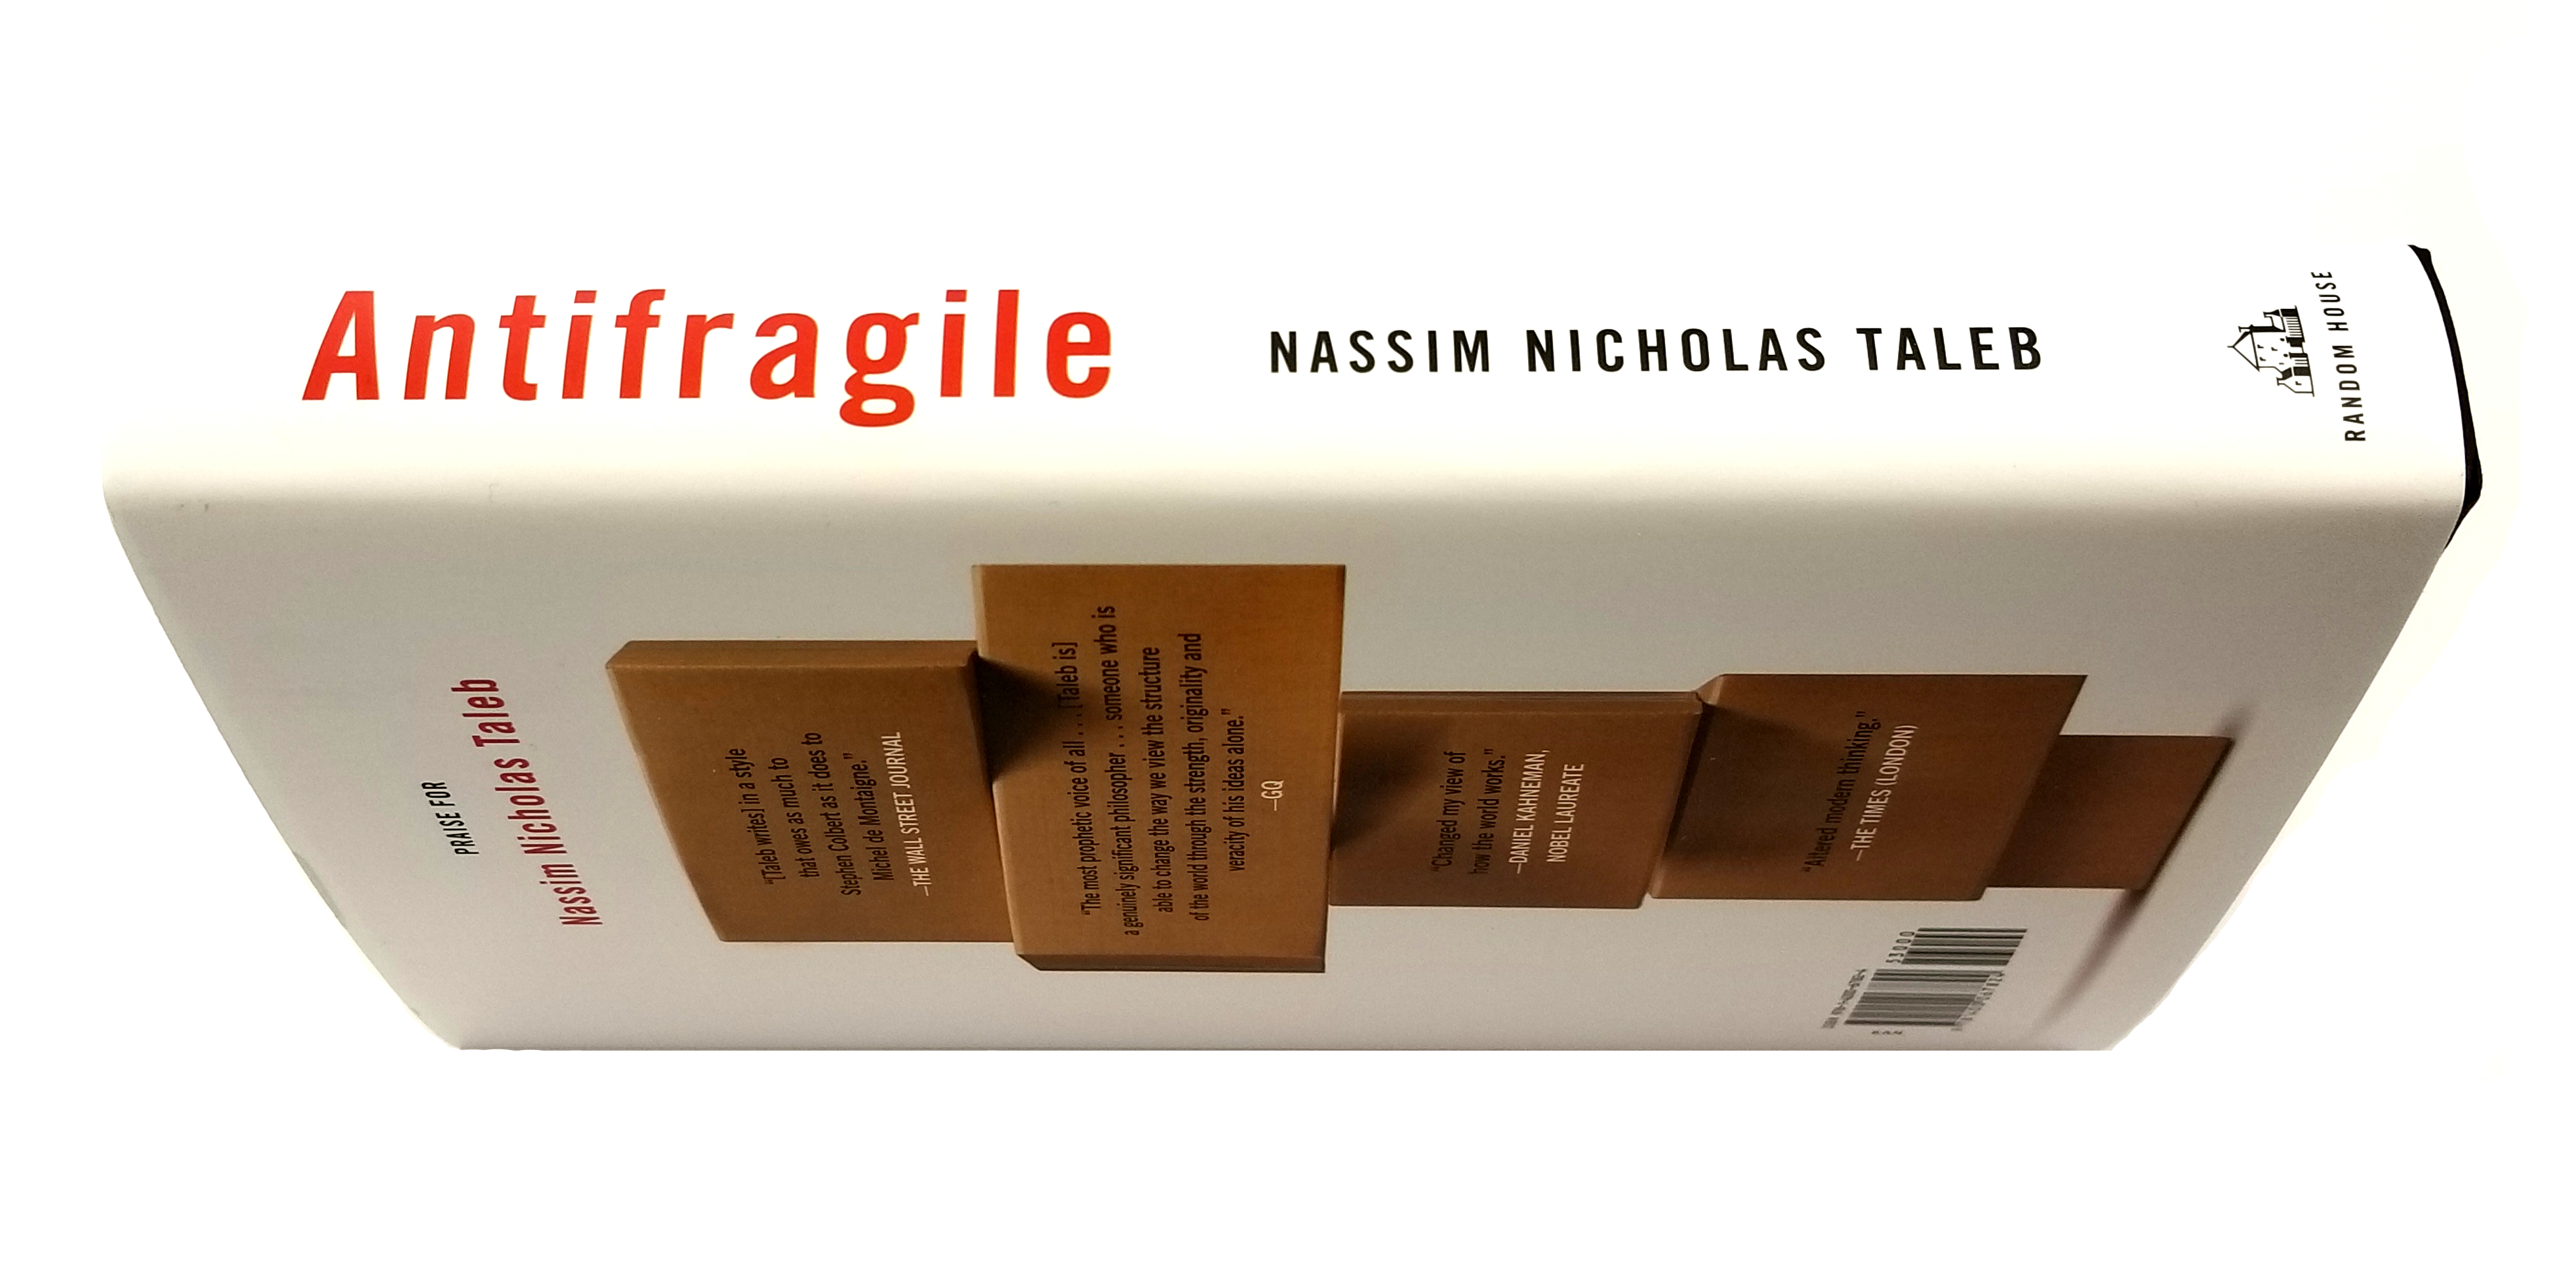 side angle of nassim nicholas taleb's antifragile book, you can see binding and back cover slightly